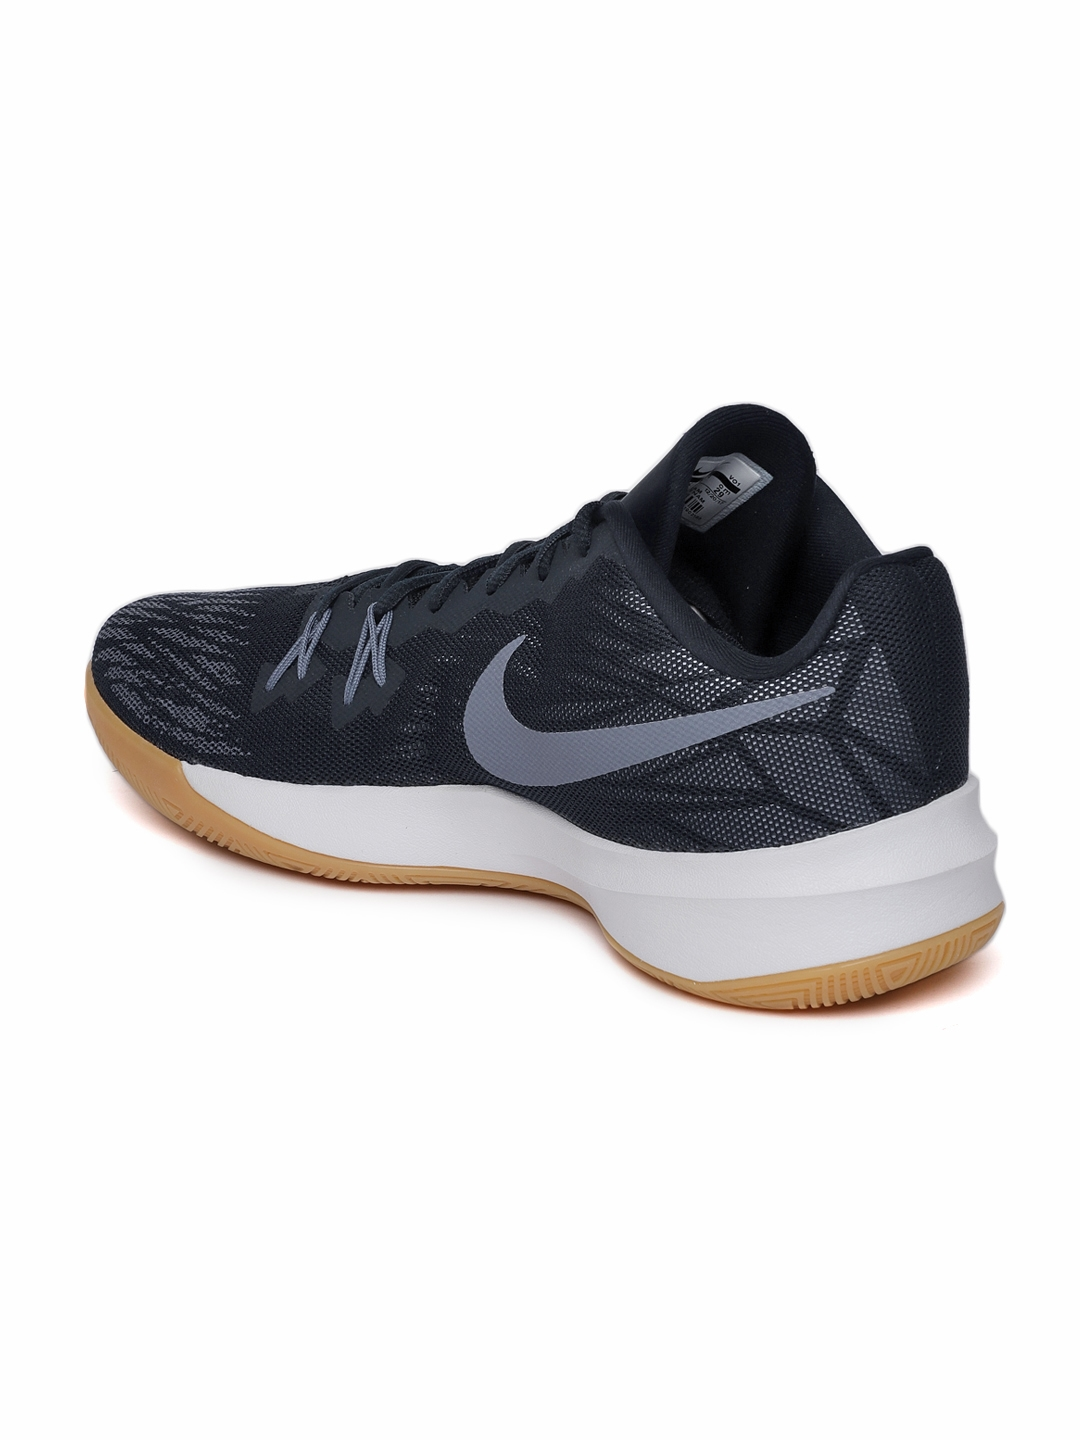 4f53617031908 Buy Nike Men Navy ZOOM EVIDENCE II Basketball Shoes - Sports Shoes ...